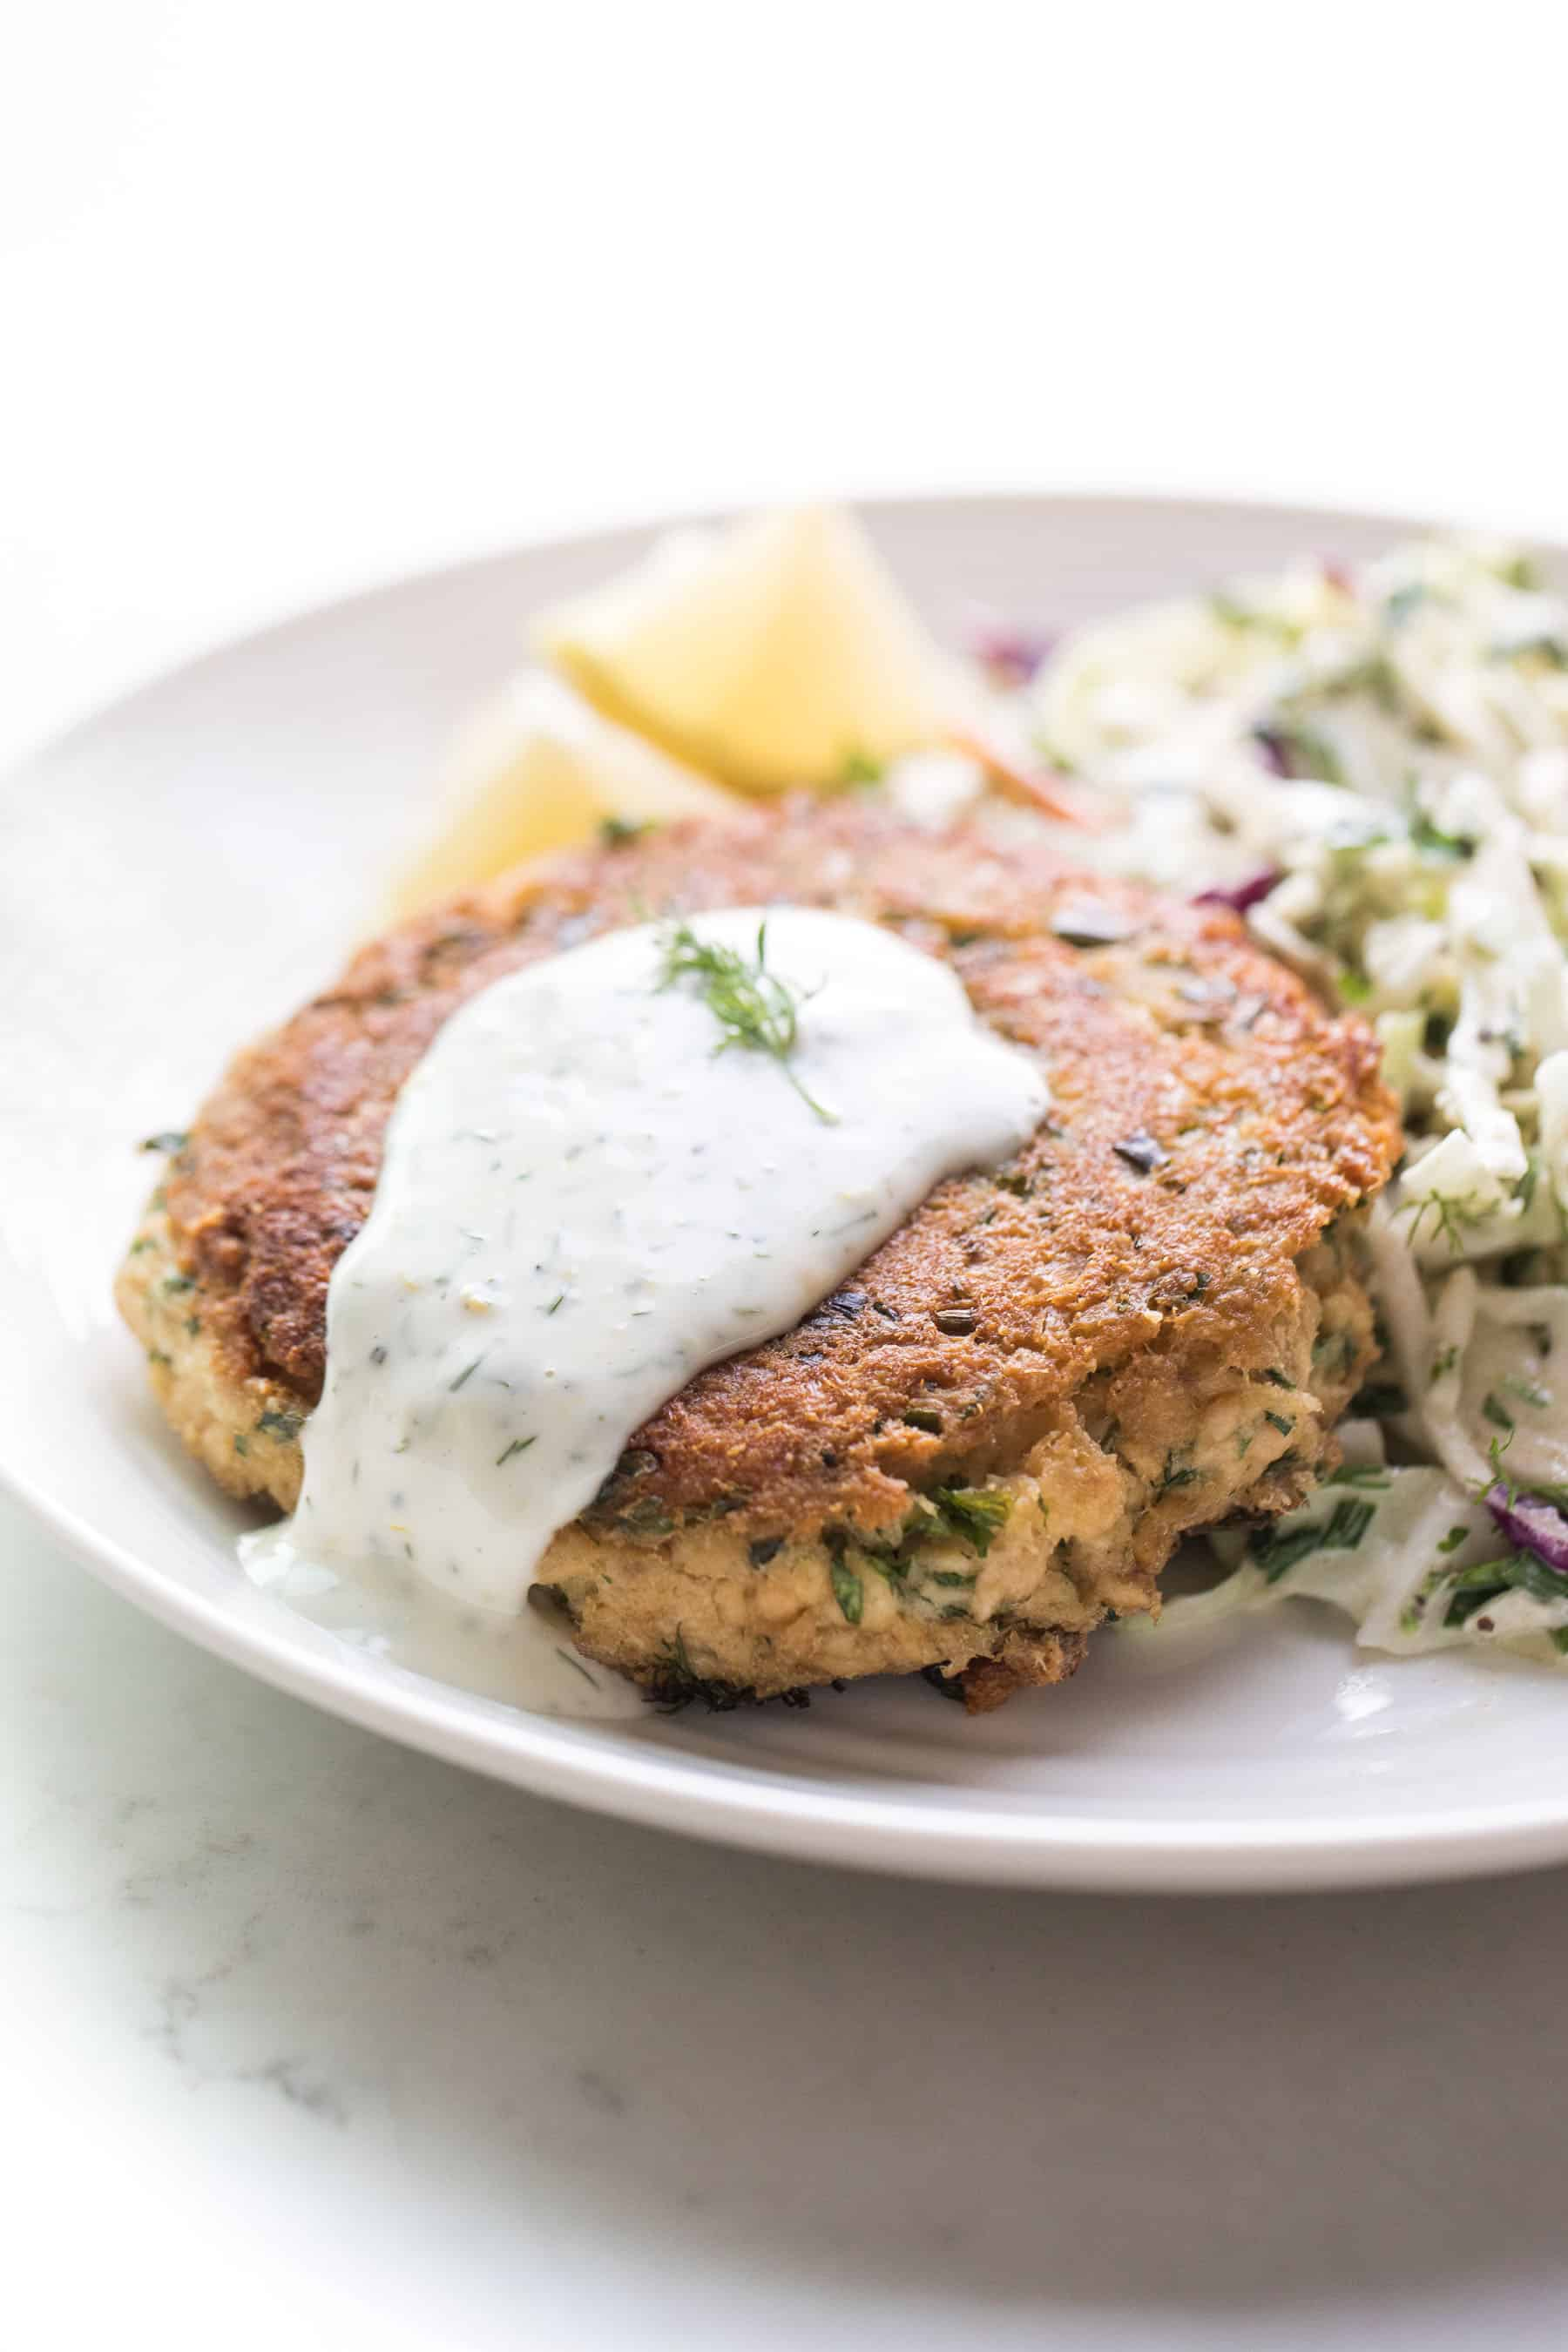 Salmon cake on a white plate with aioli, coleslaw and lemon wedges